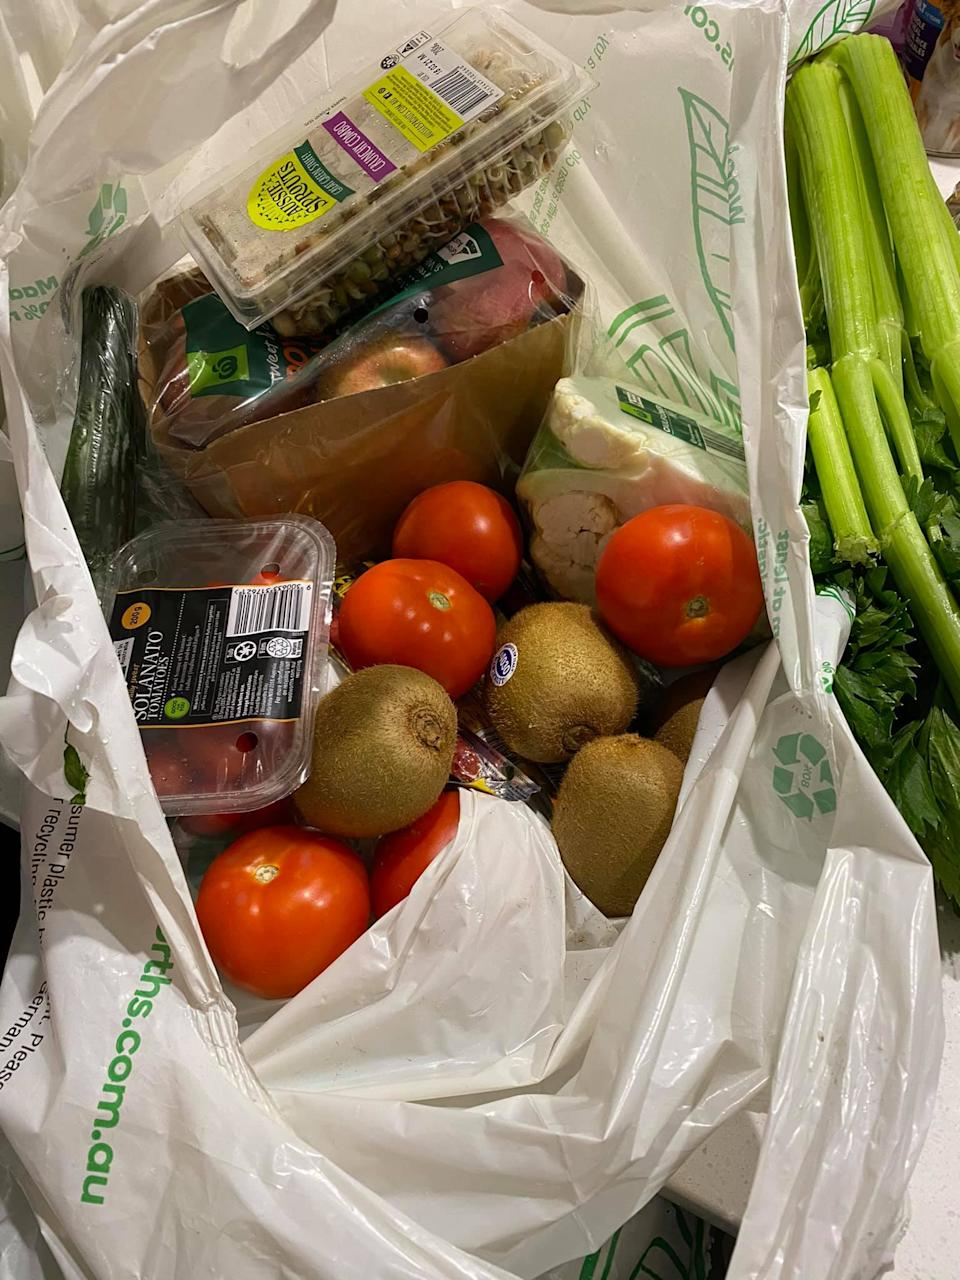 Becky Kissin's Woolworths order, showing fruit and vegetables piled into a single bag.